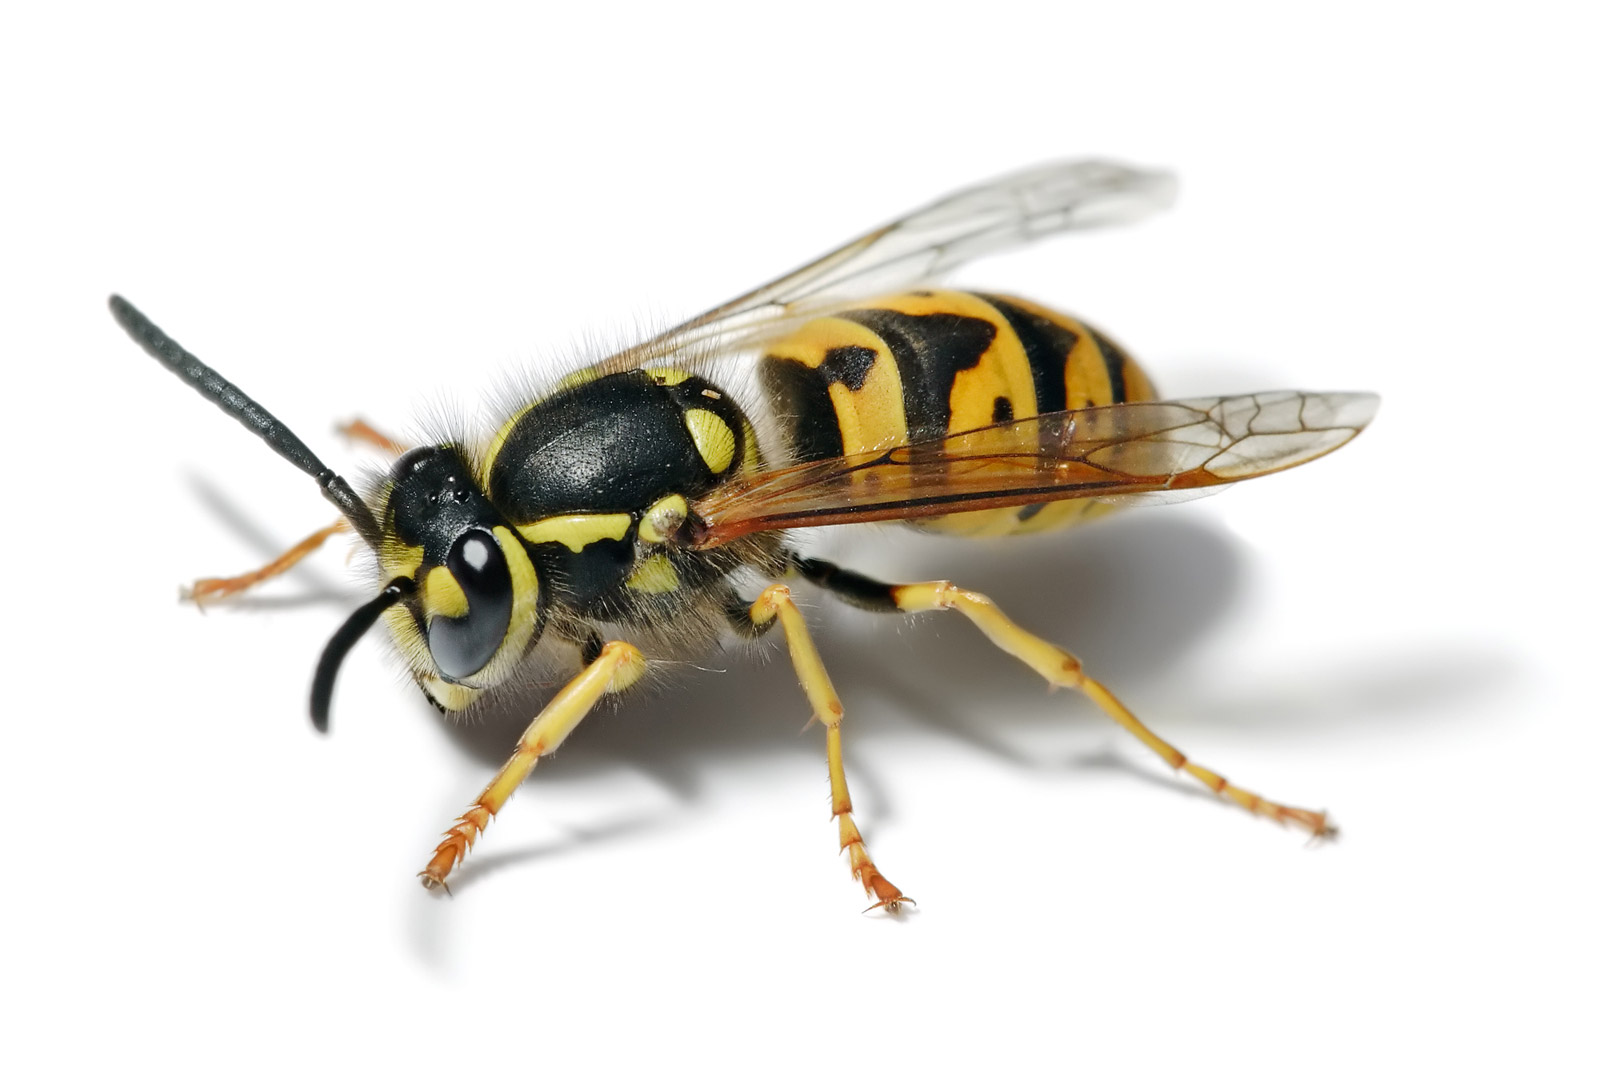 You like yellowjackets? Because loads of rotting fruits is how you get yellowjackets. https://upload.wikimedia.org/wikipedia/commons/9/93/European_wasp_white_bg.jpg